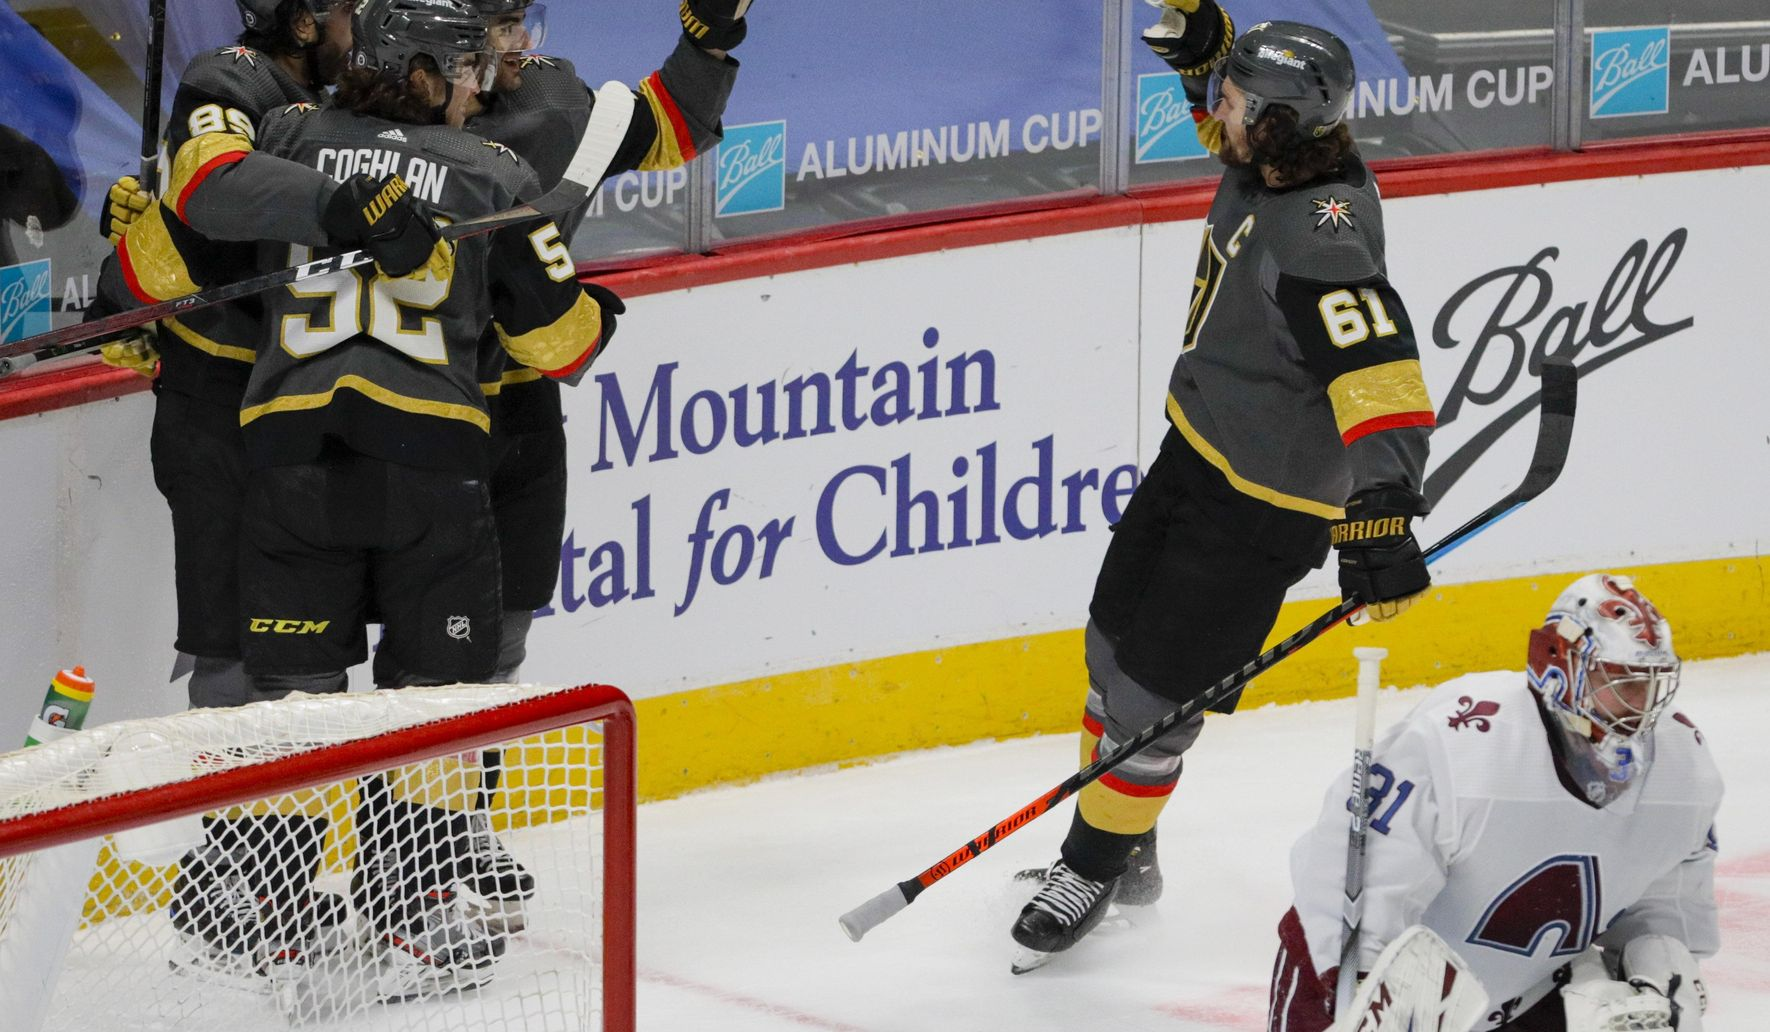 Pacioretty lifts Golden Knights past Avs in West showdown